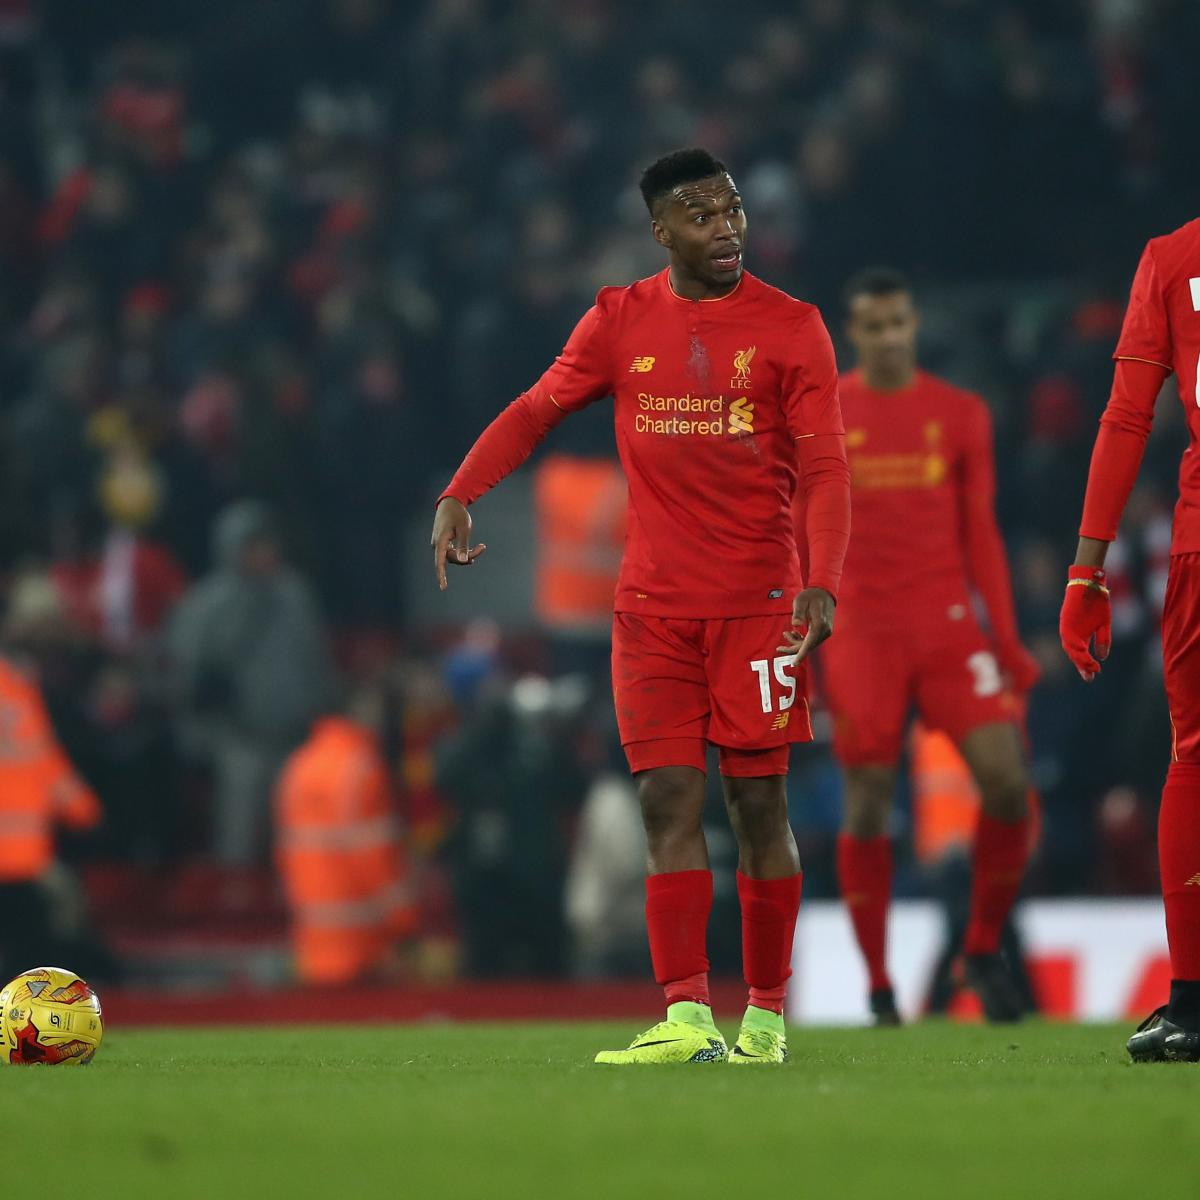 Live Streaming Soccer News Liverpool Vs Benfica Live: Liverpool Vs. Wolves: FA Cup 2017 Team News, Preview, Live